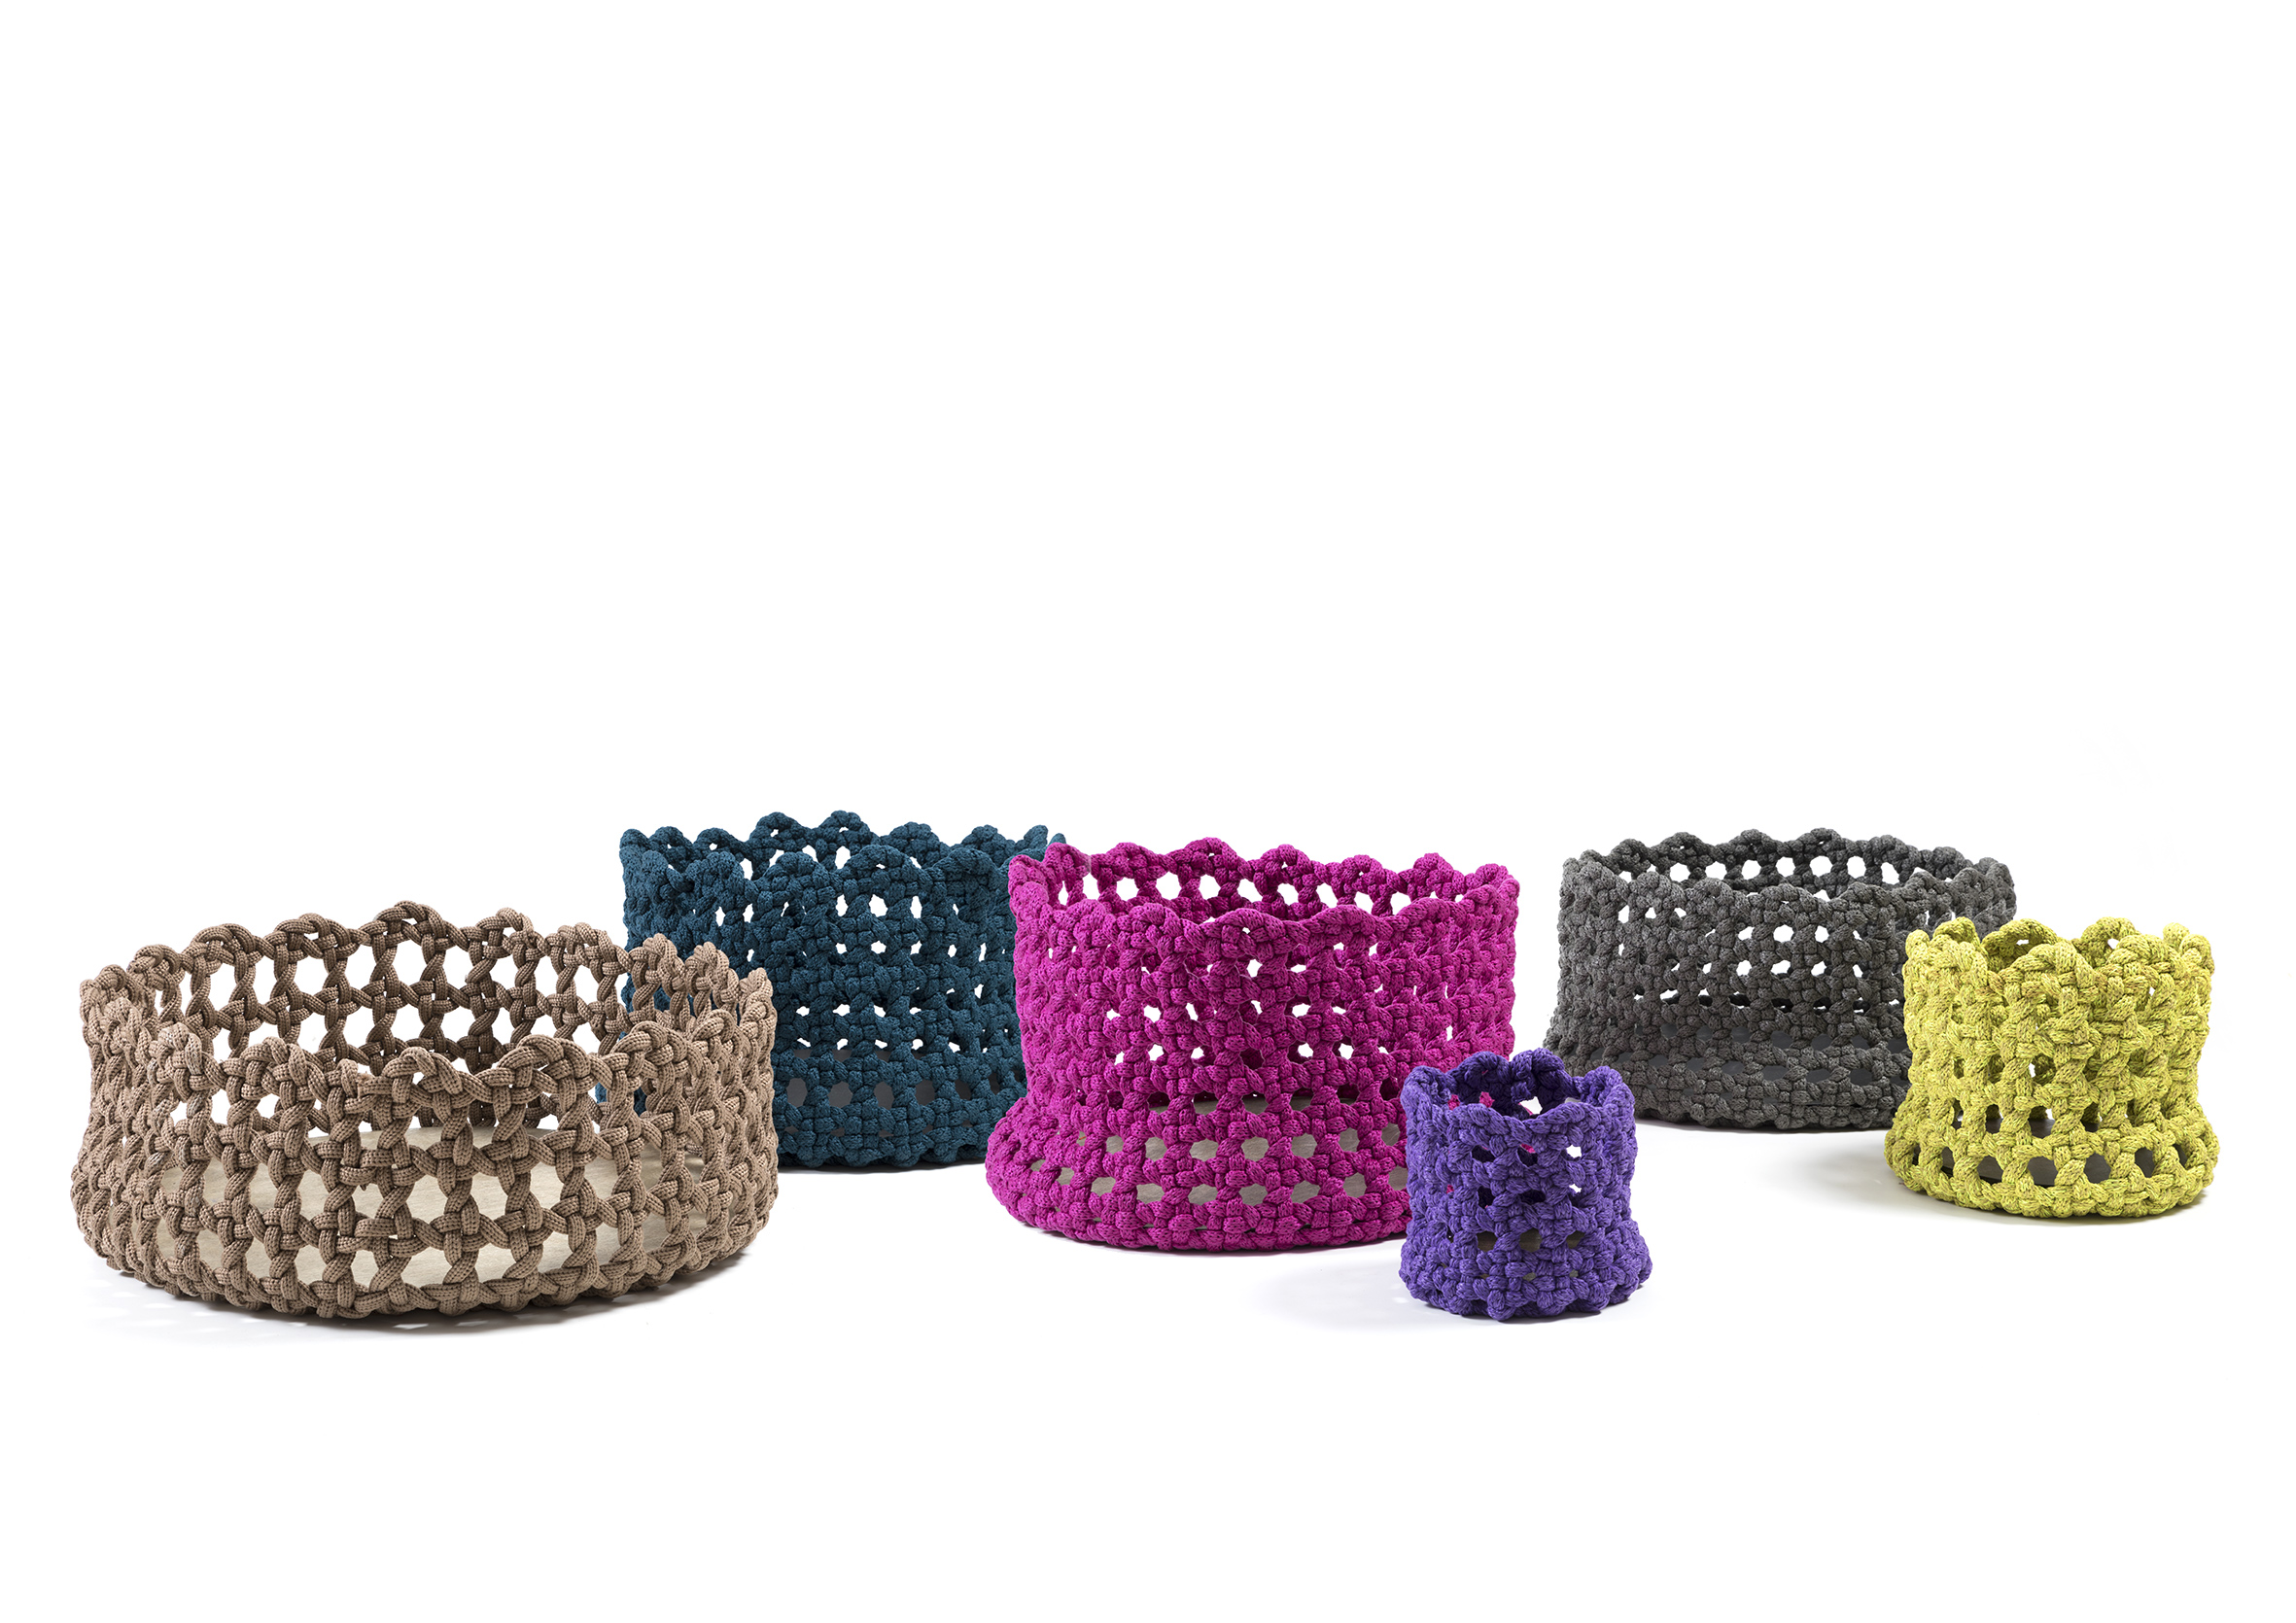 UNpizzo.products.baskets